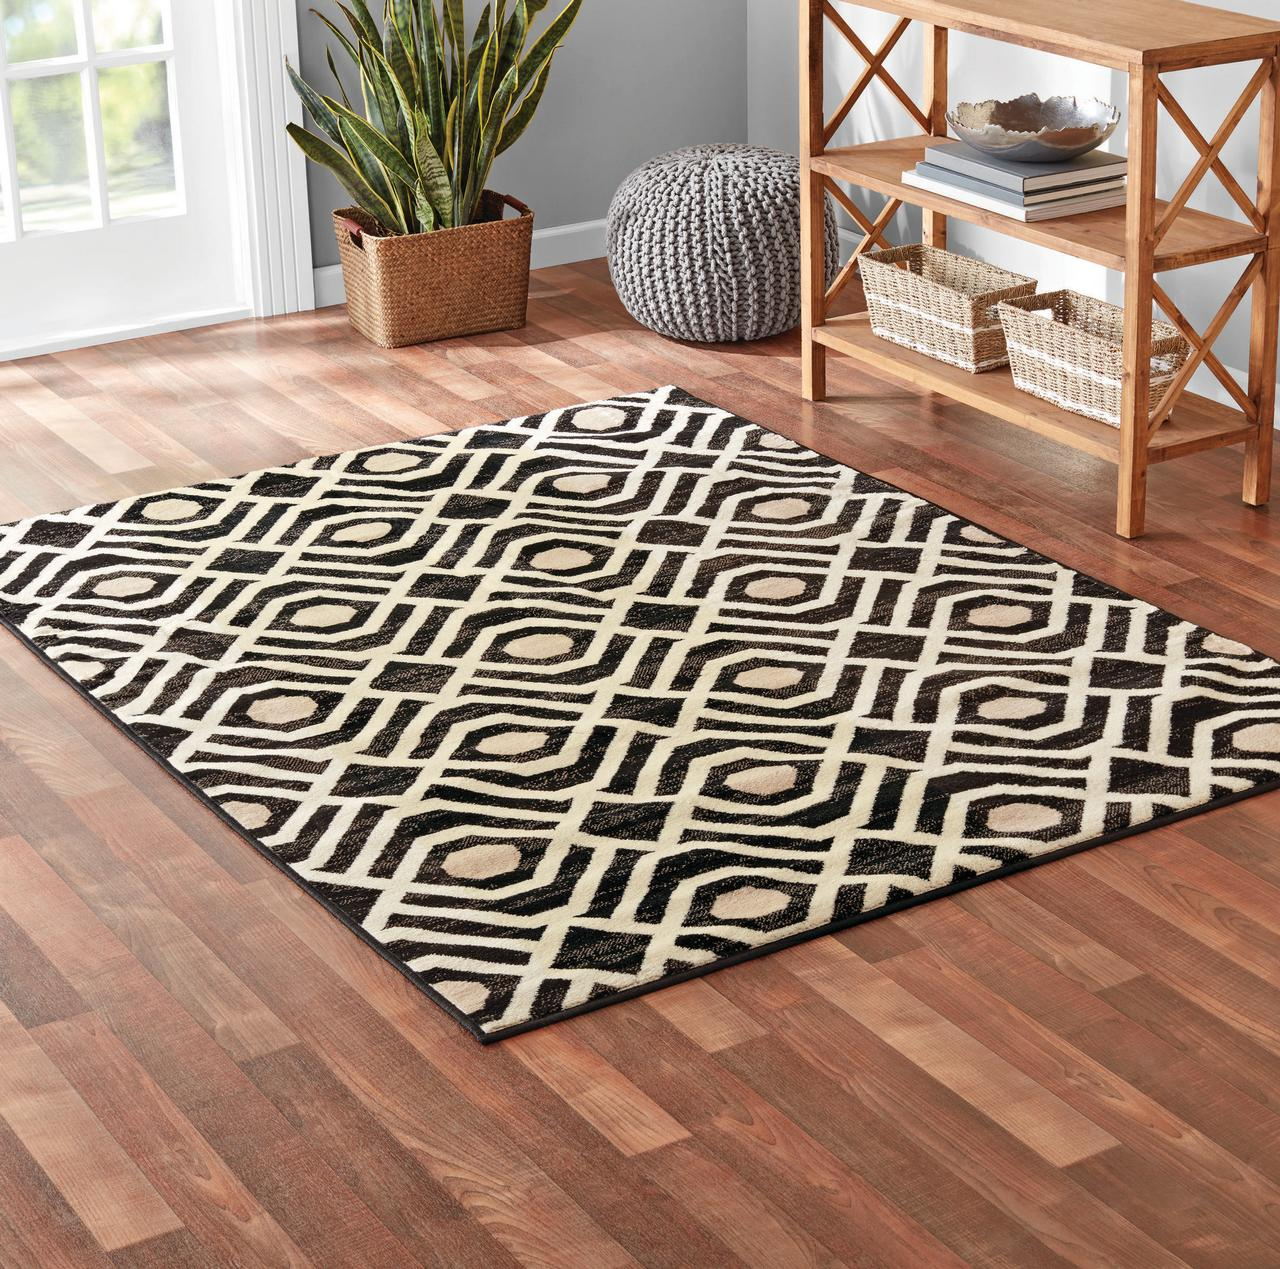 Mainstays 3 PC Rug Set